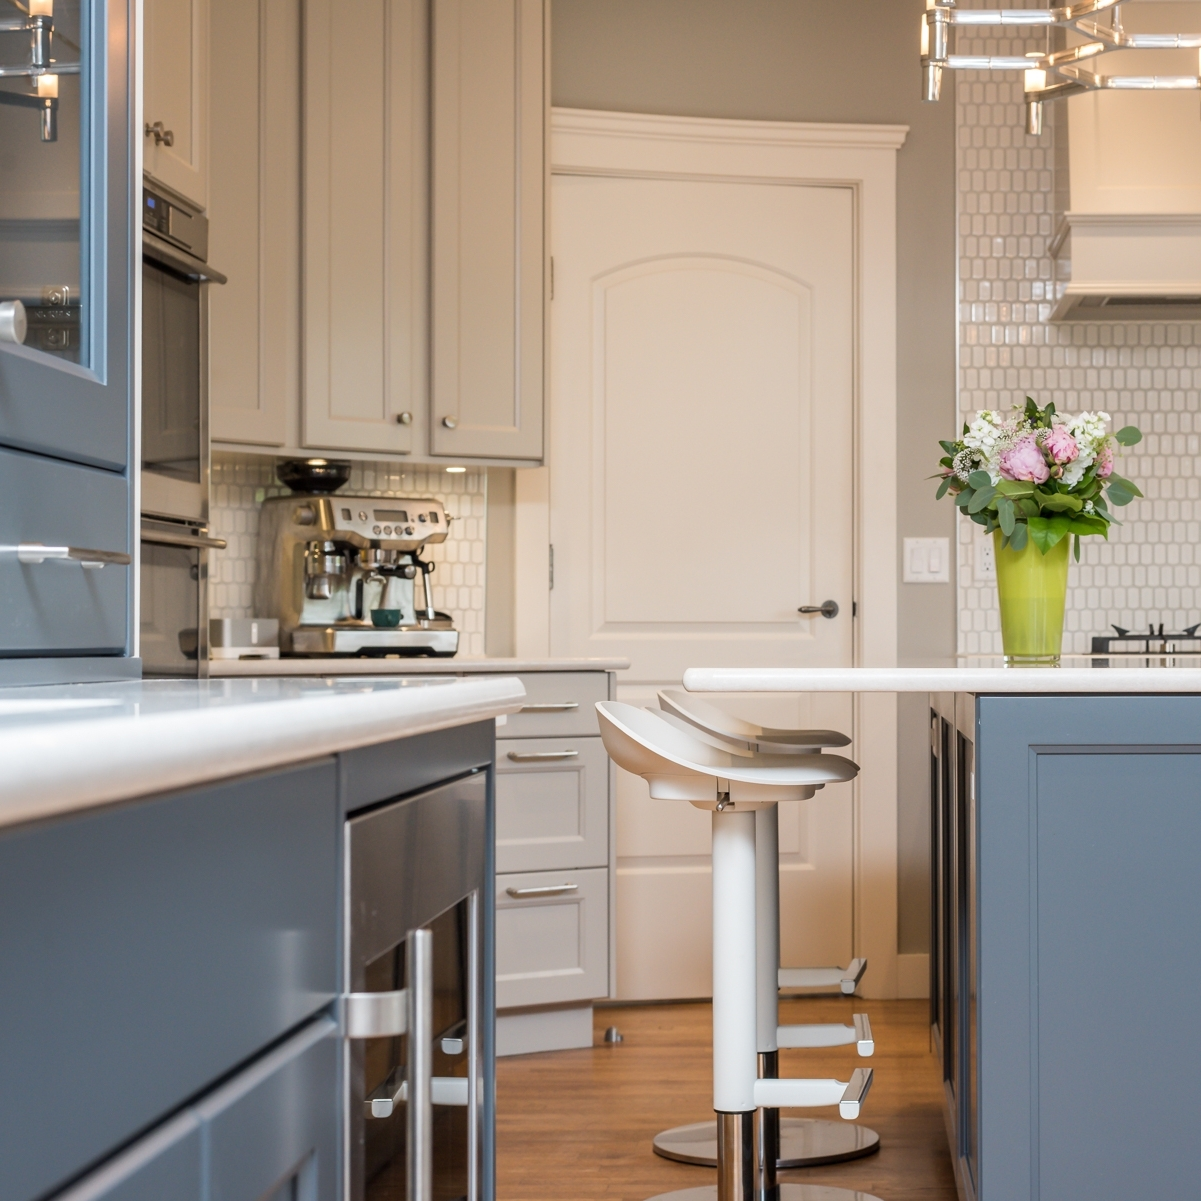 vancouver-kitchen-renovation.jpg